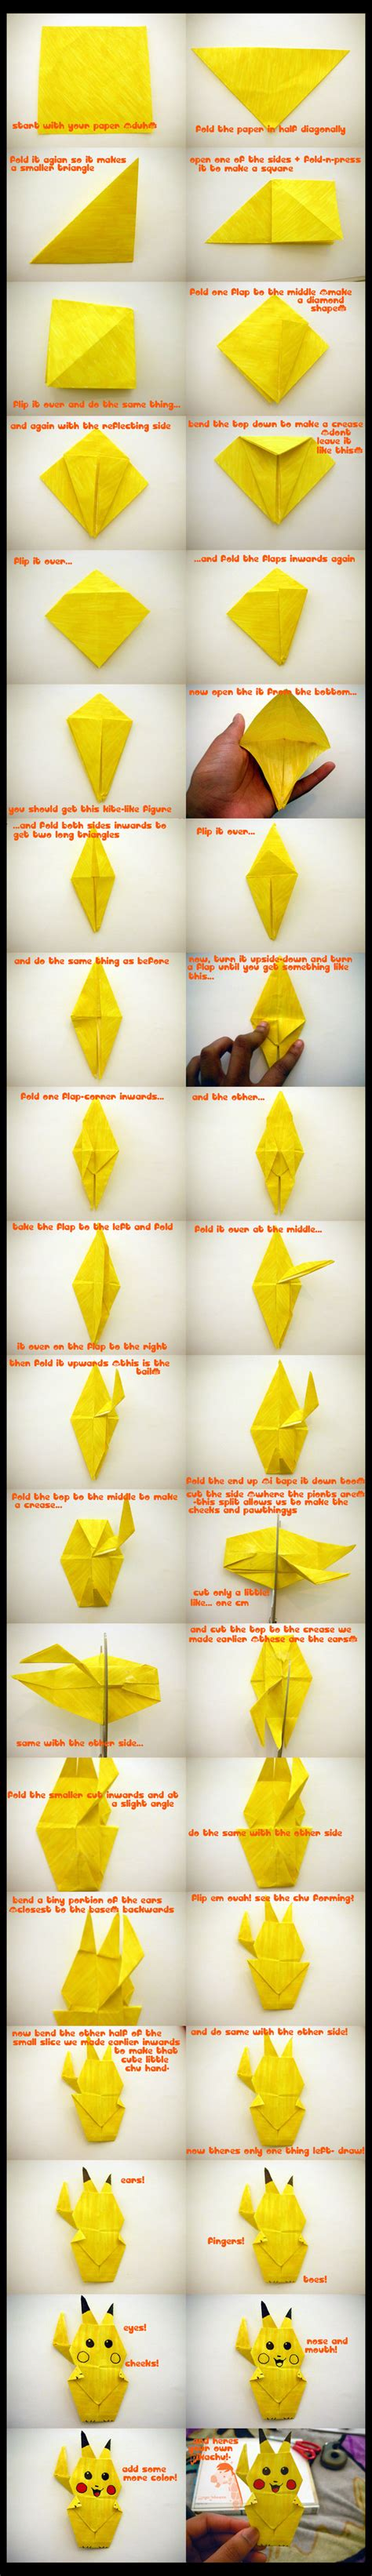 how to make a pikachu origami how to make an origami pikachu by wesroz on deviantart